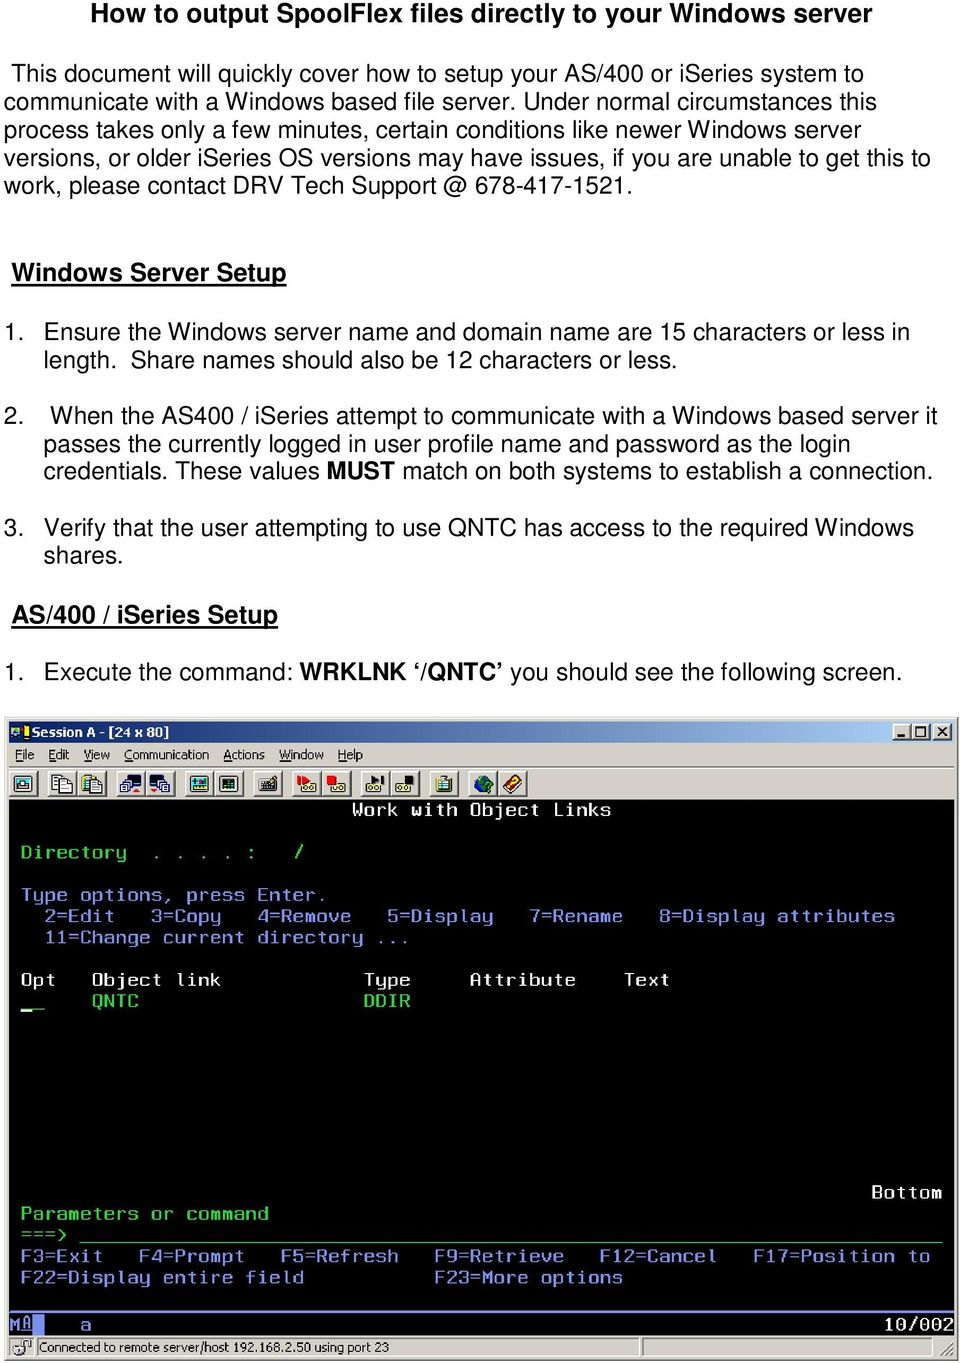 How to output SpoolFlex files directly to your Windows server - PDF